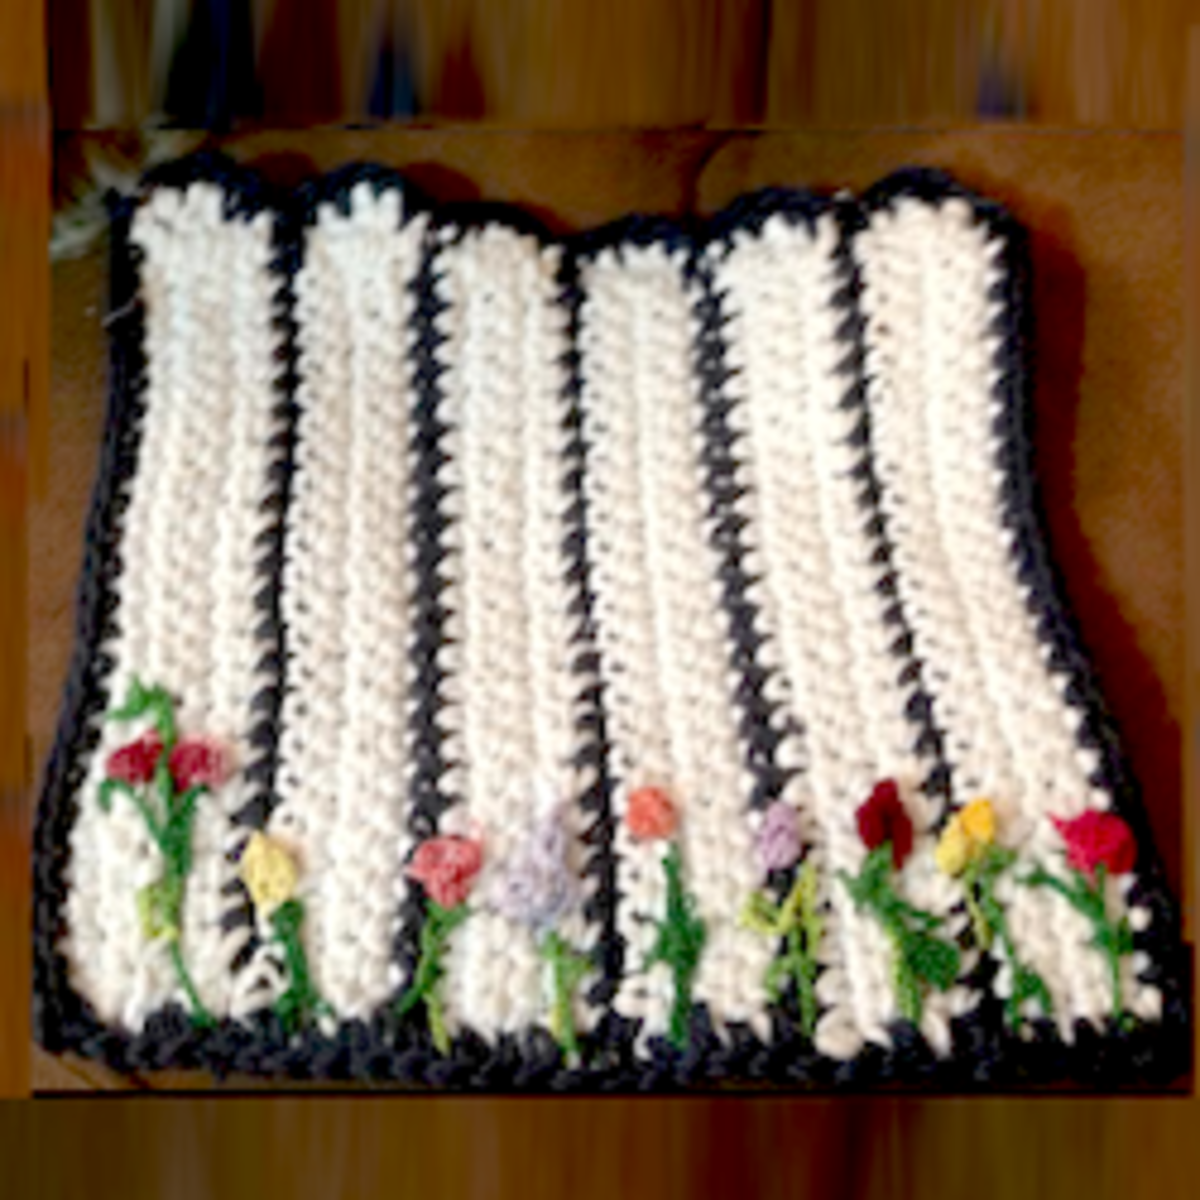 My Picket Fence Potholder Done With Two Colors of Intarsia Crochet